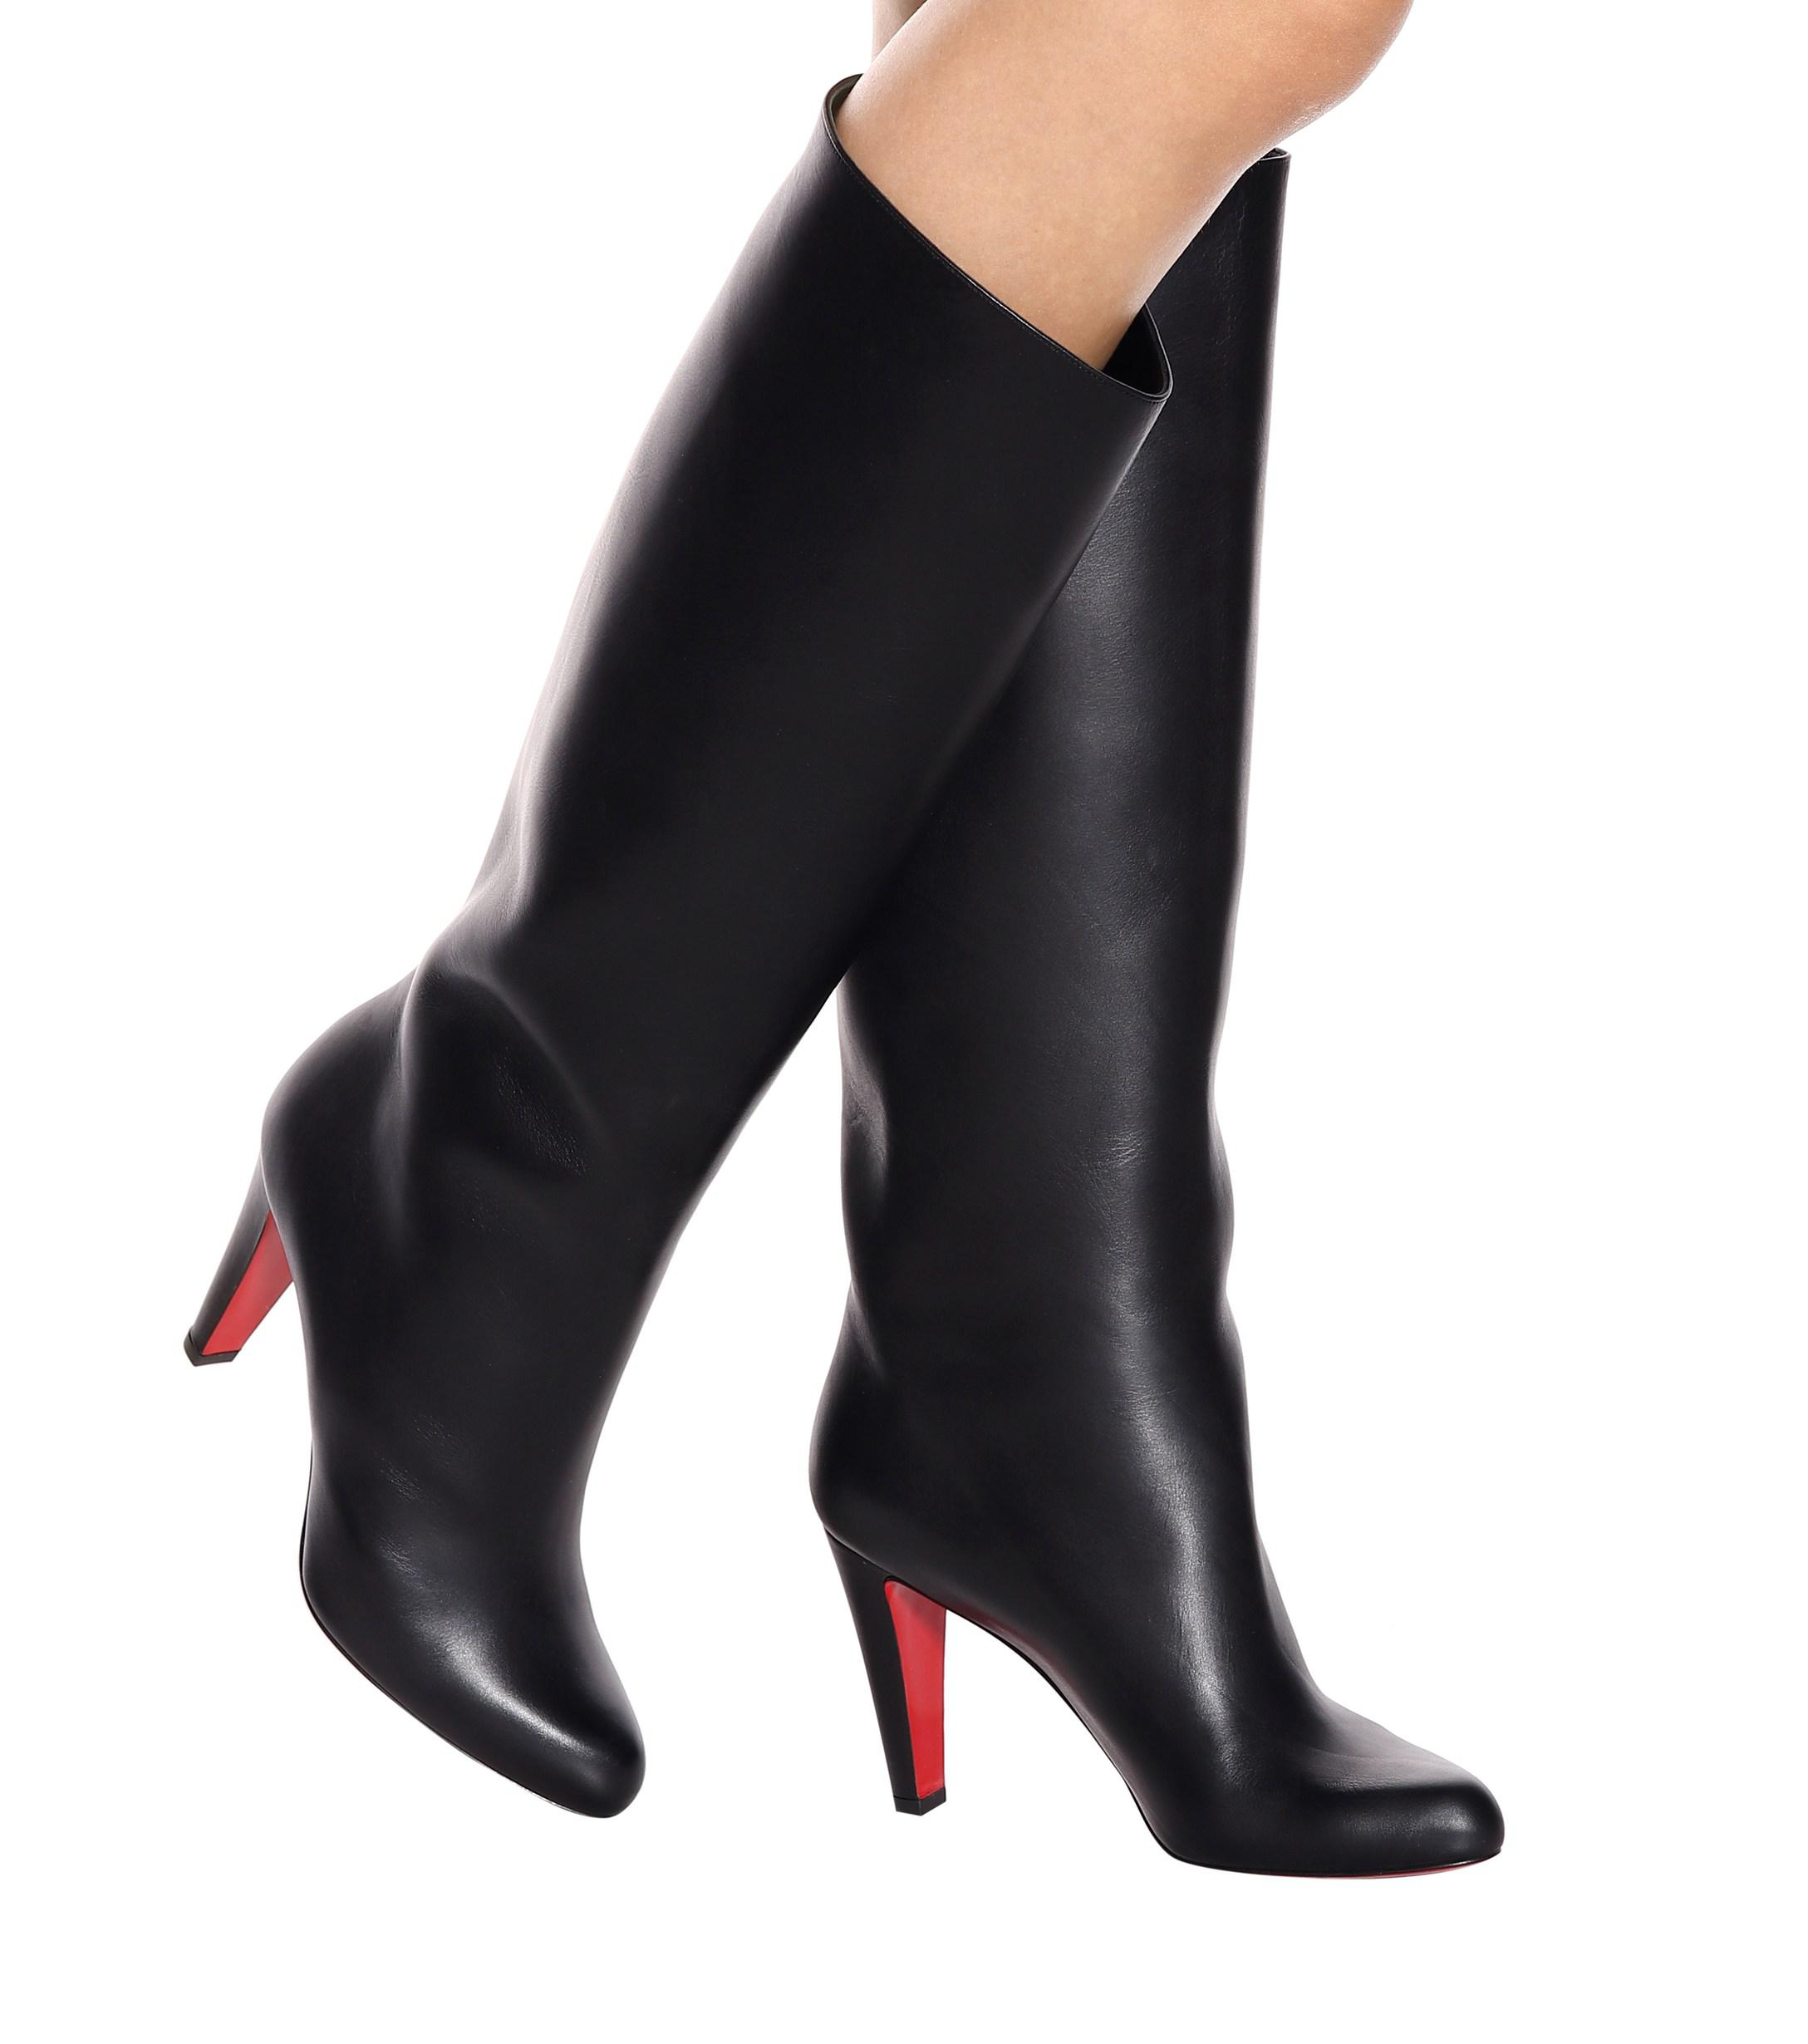 designer fashion 8d8a2 8974a Christian Louboutin Black Marmara Botta 85 Leather Boots